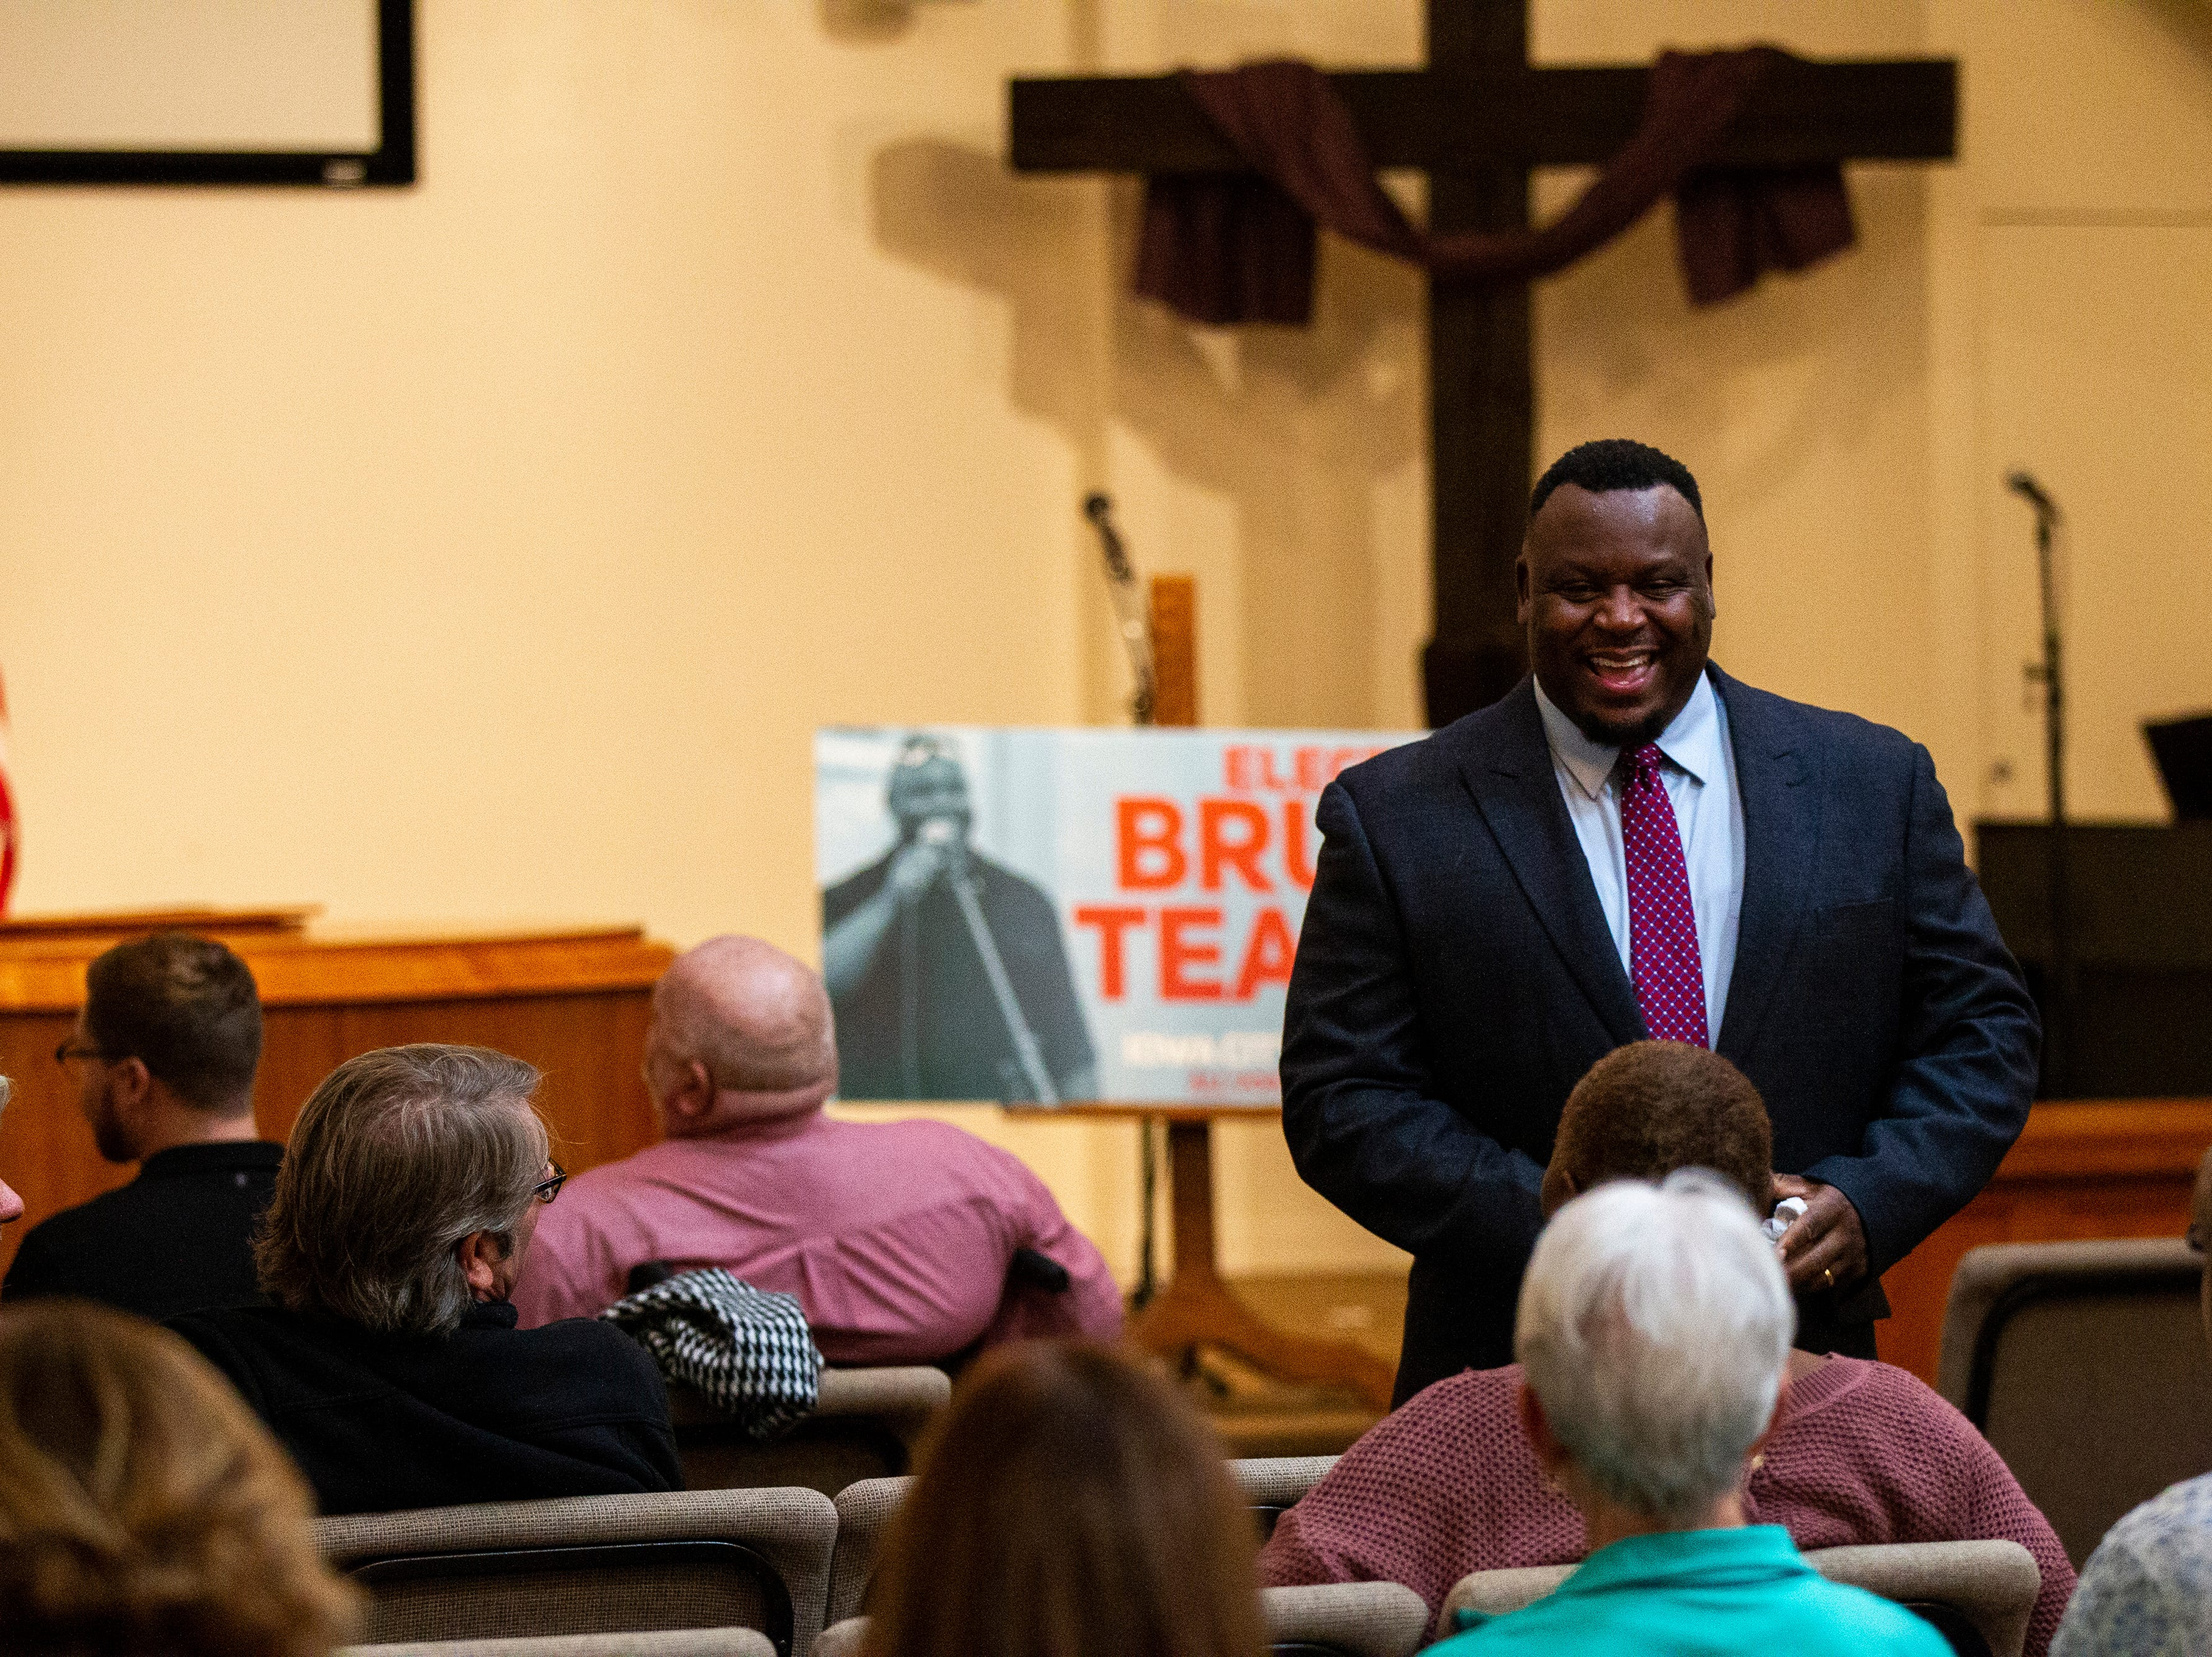 Bruce Teague greets supporters before his swearing in ceremony for Iowa City council on Saturday, Oct. 13, 2018, at the Church of Nazarene on Wade Street in Iowa City.